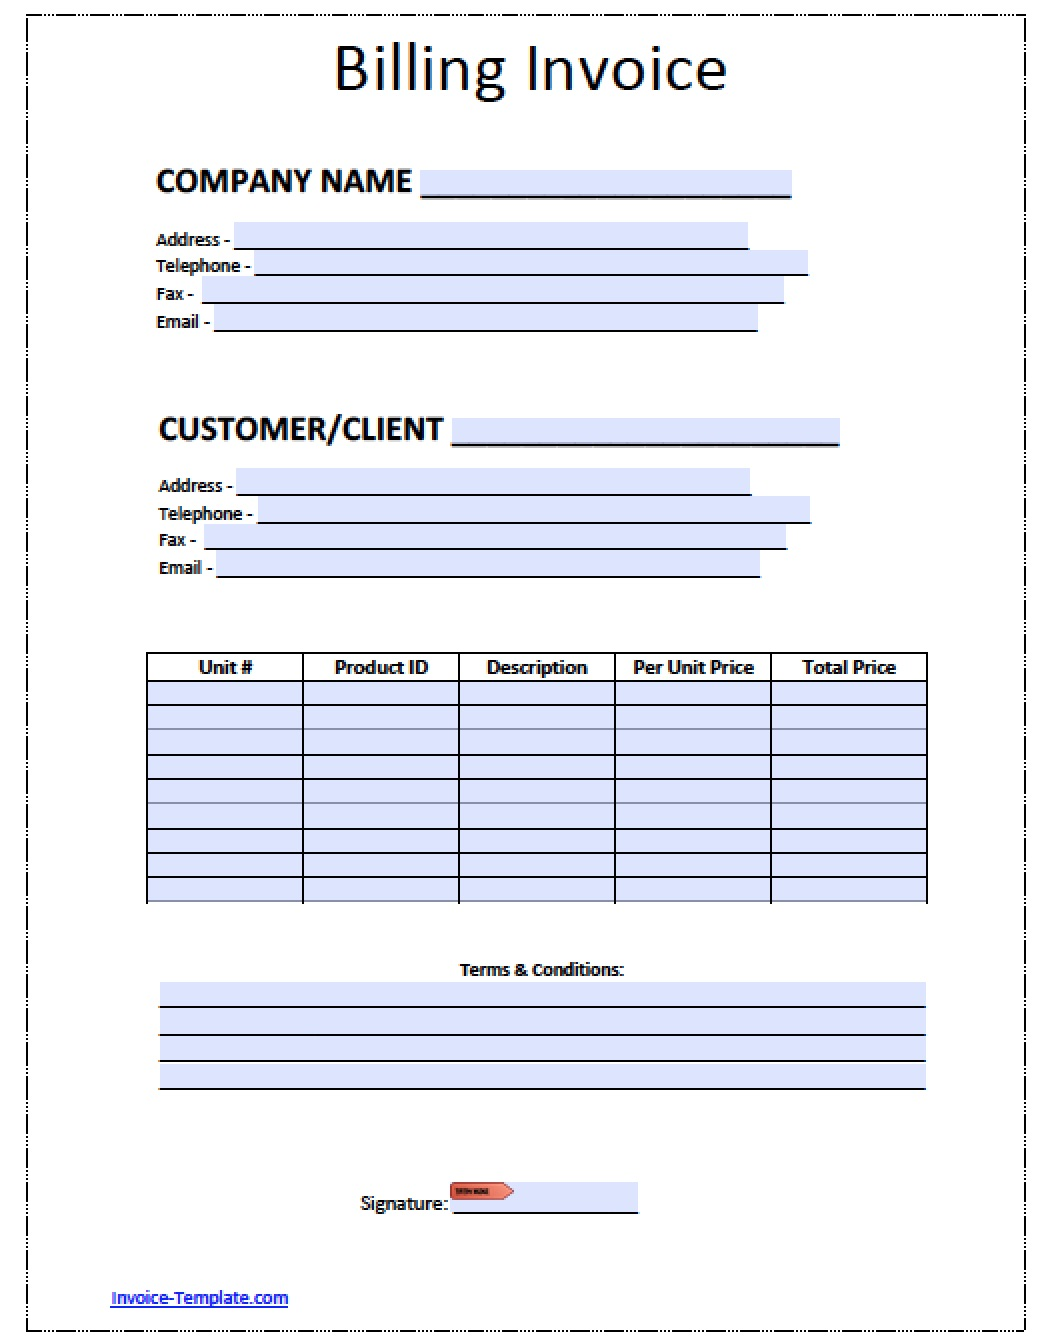 Free Billing Invoice Template Excel PDF Word Doc - Law firm invoice template word for service business